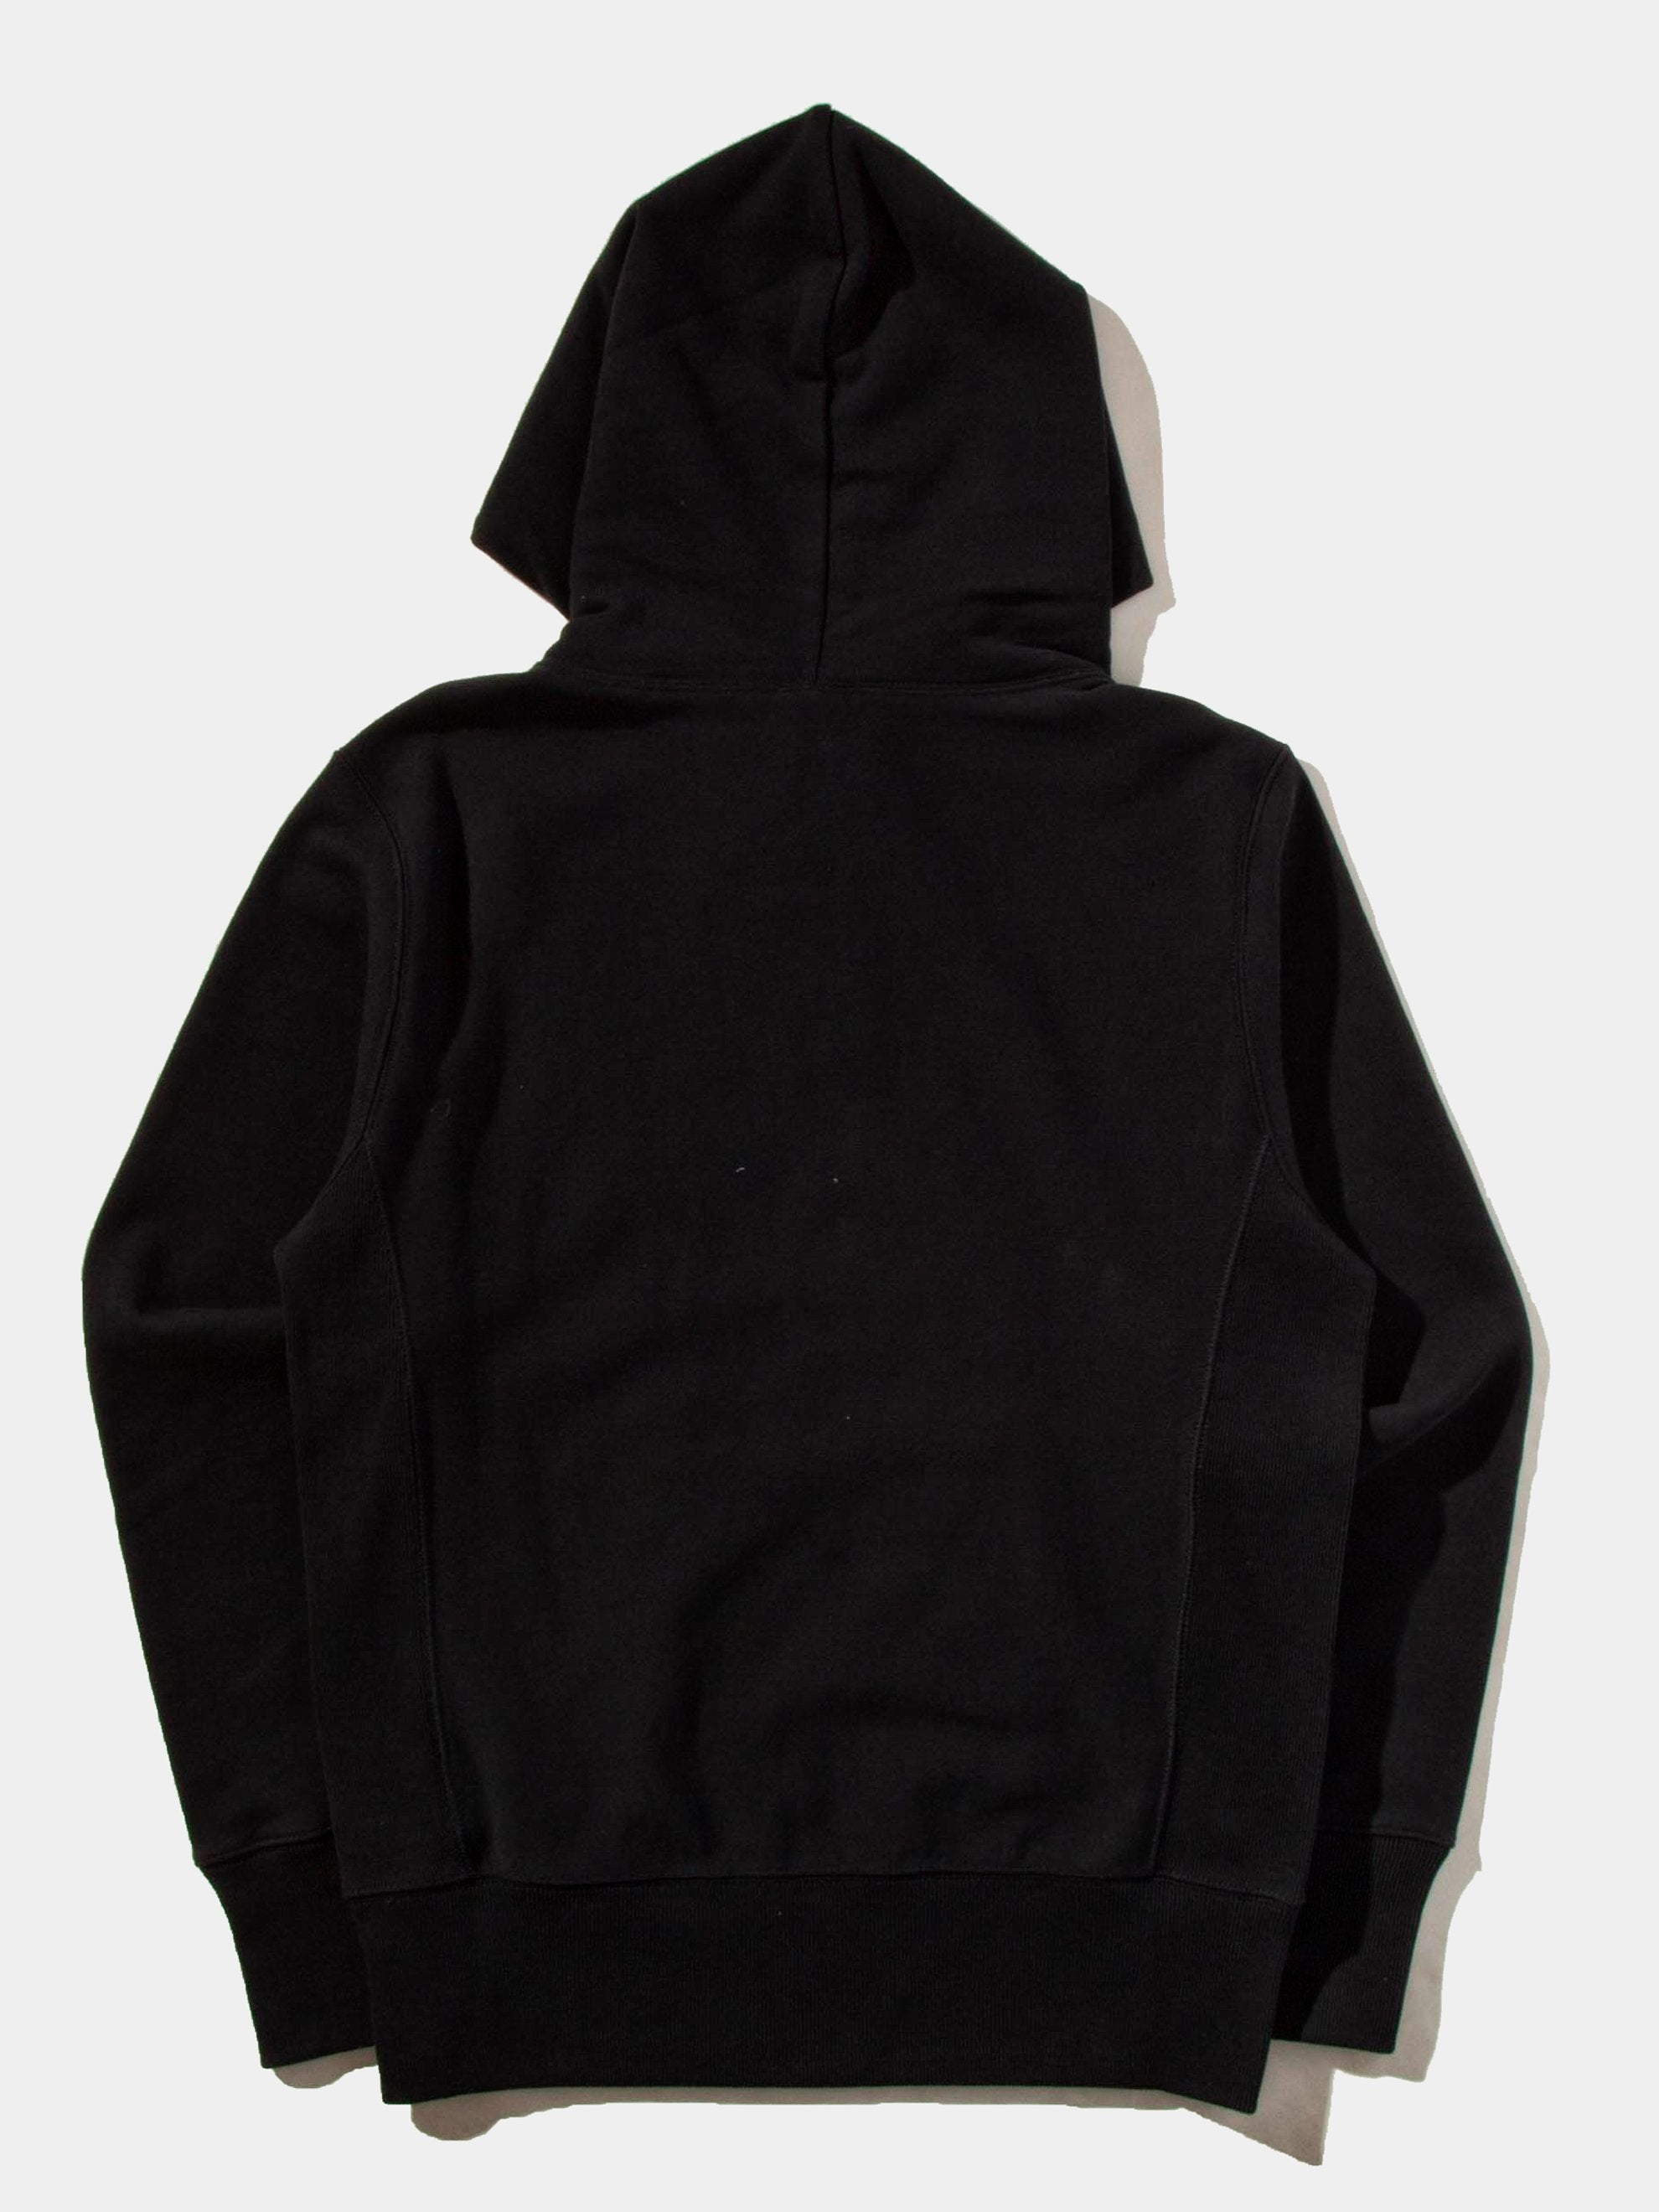 Black Hooded Sweatshirt 11